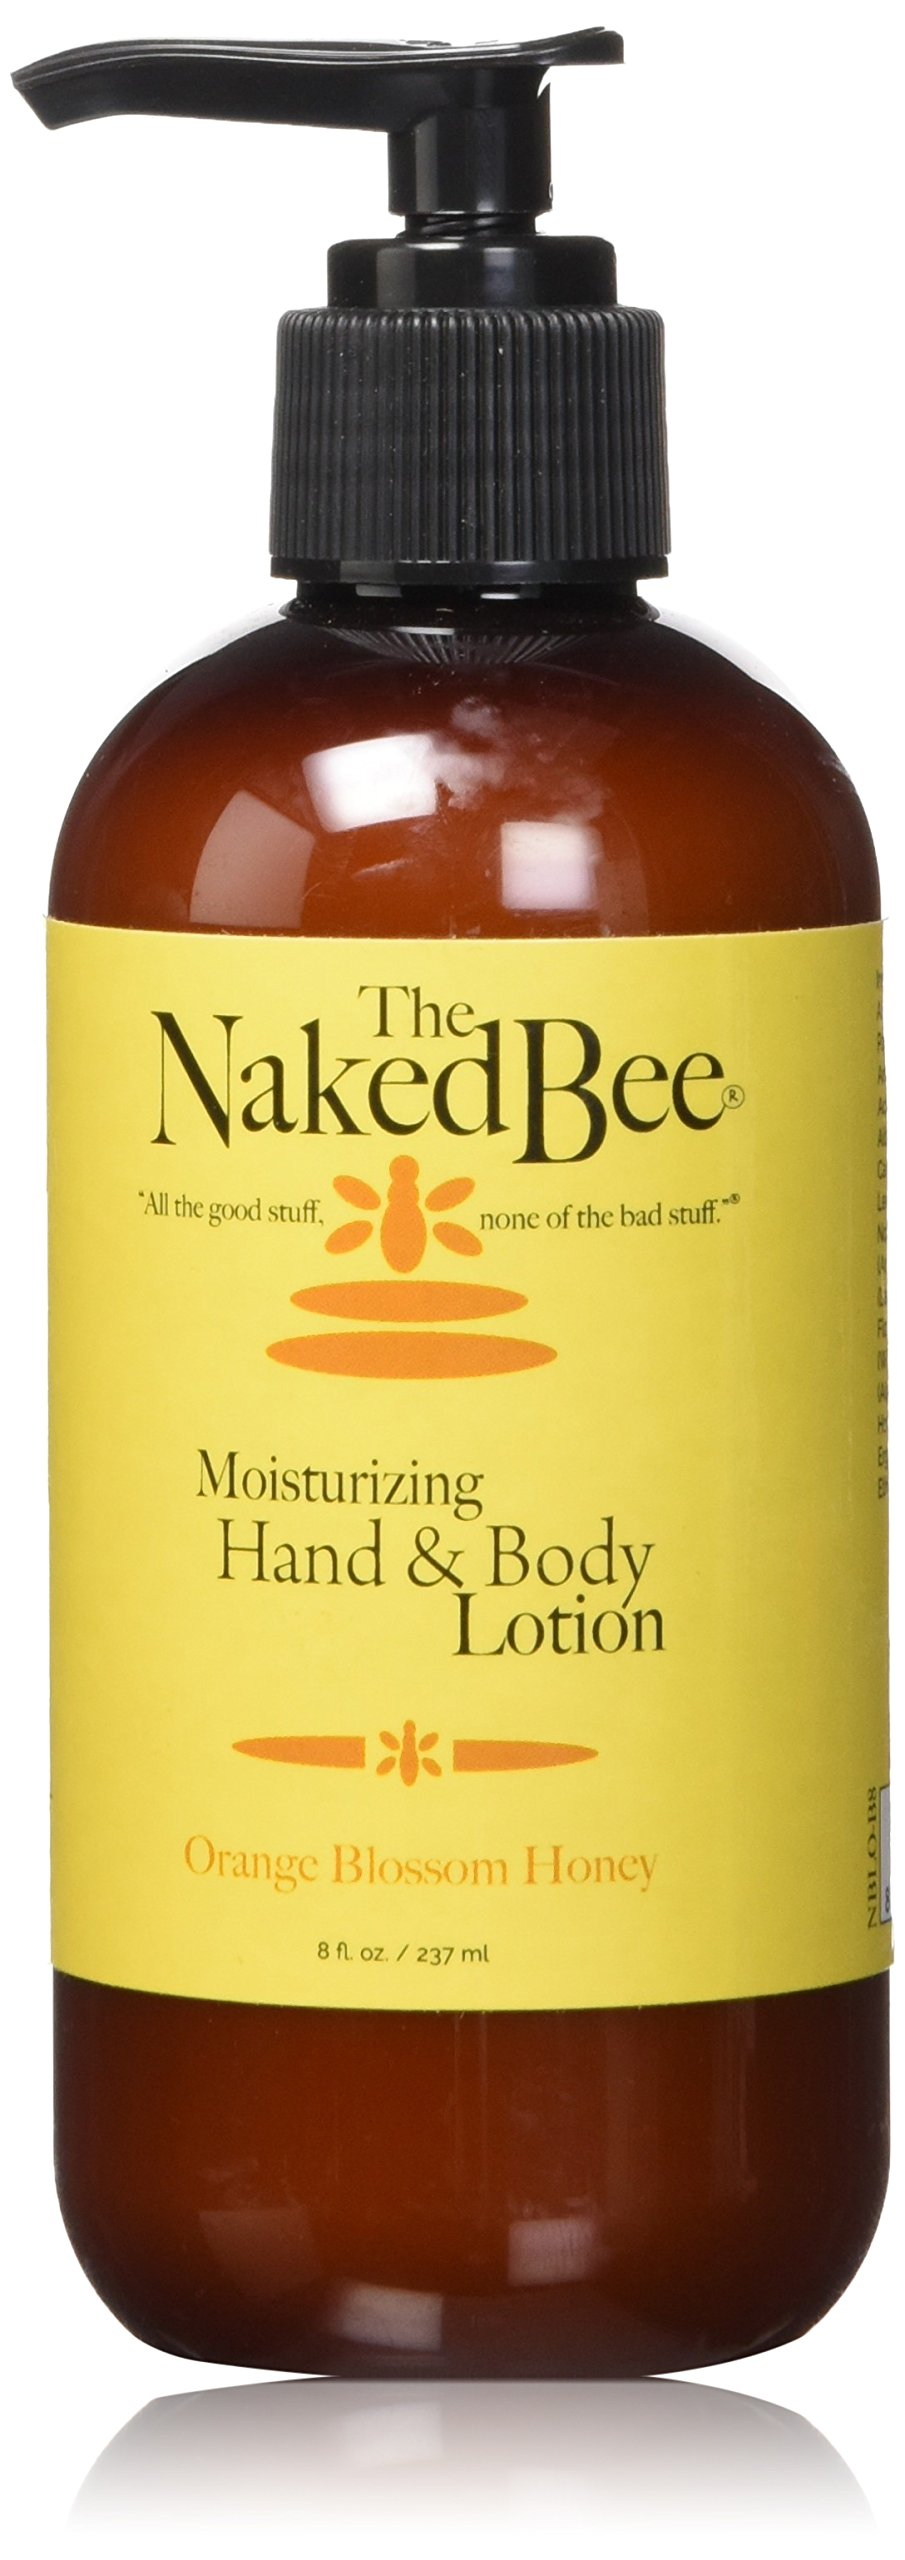 The Naked Bee Moisturizing Hand & Body Lotion, 8 Ounce, Orange Blossom Honey by The Naked Bee